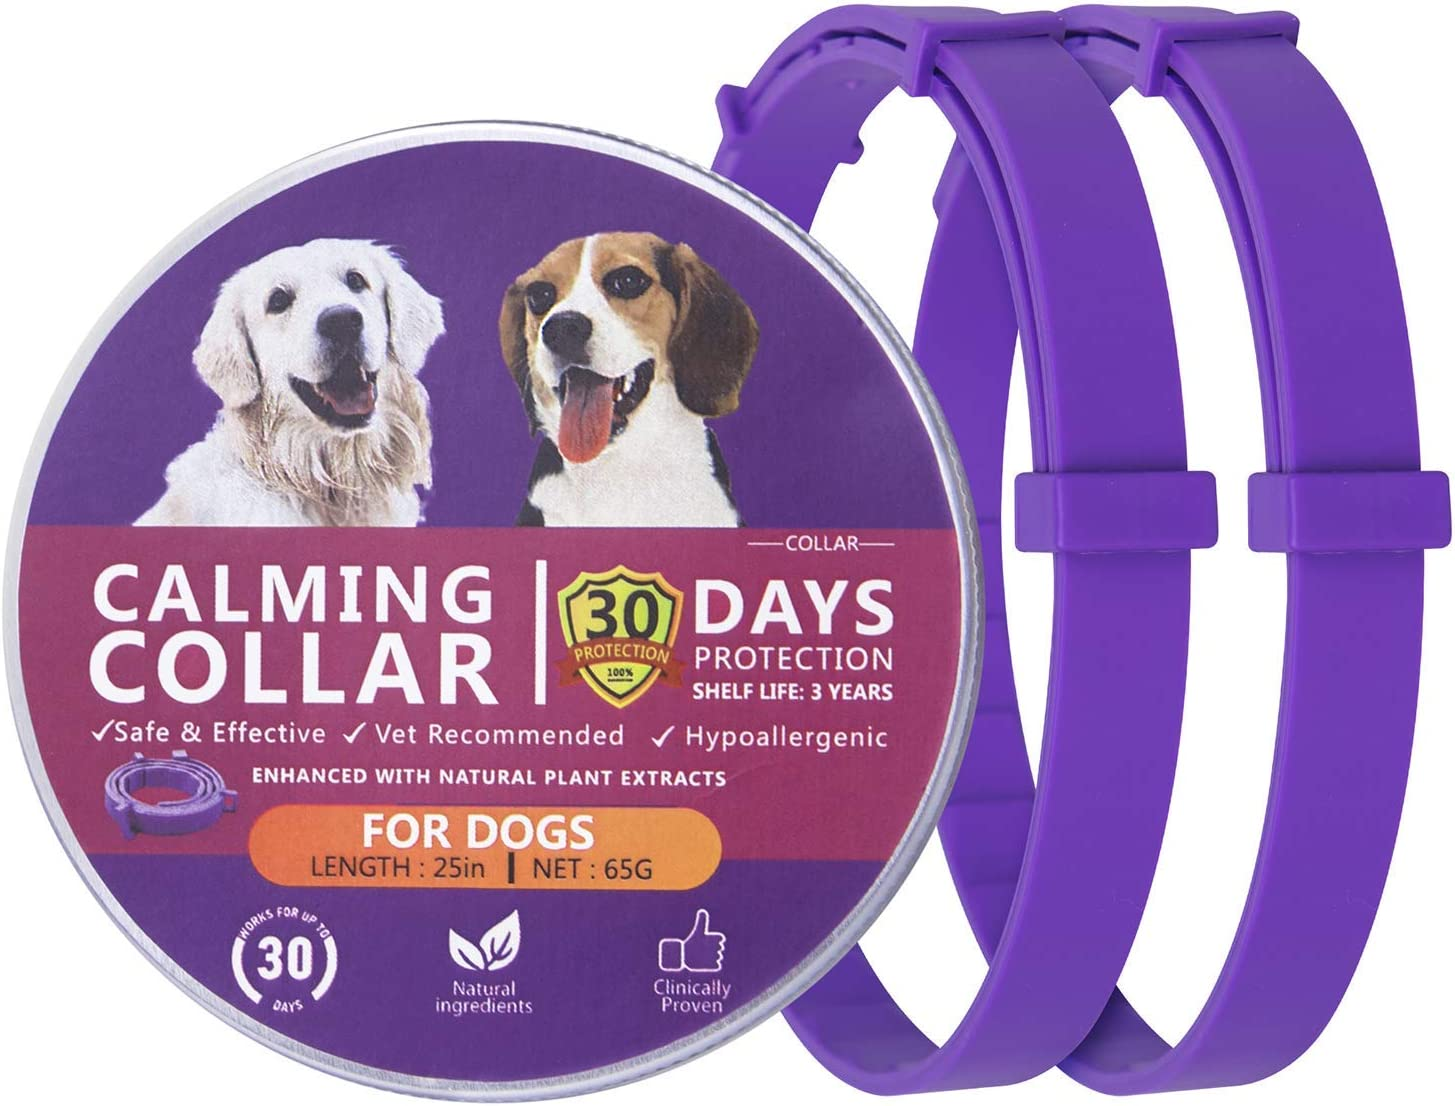 Dog Calming Collar, Calming Collar for Dogs Relieve Reduce Anxiety, Natural Calming Dog Collars, Adjustable pheromone Collar for Dogs